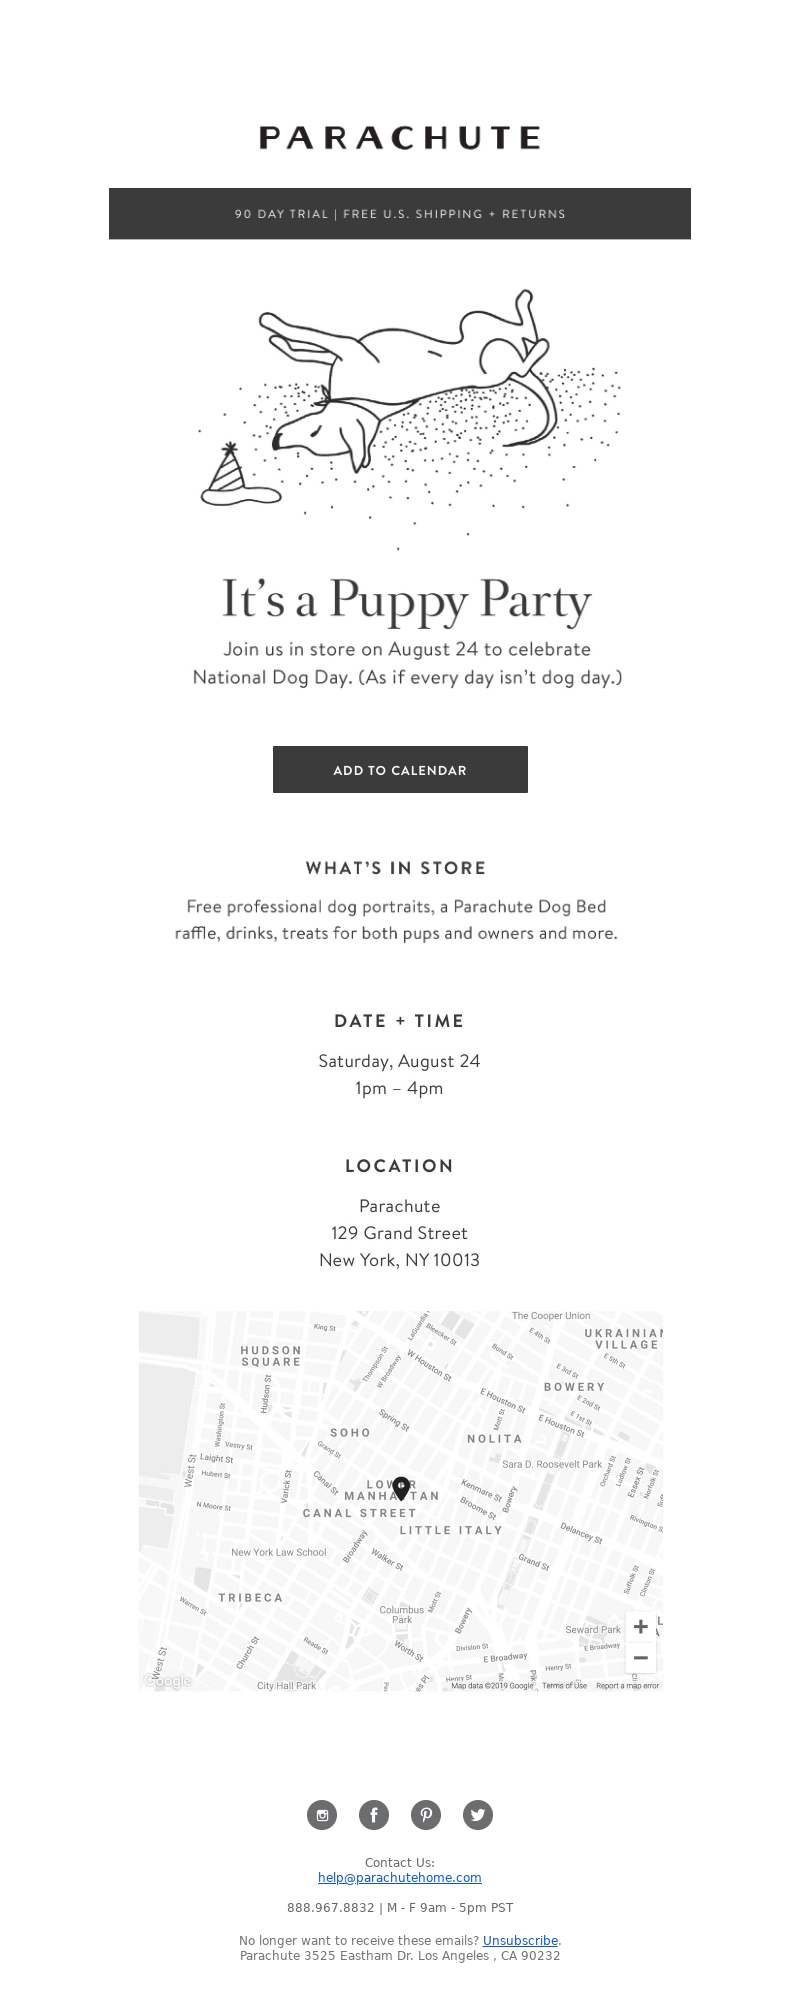 Parachute Home - You're Invited: Parachute Puppy Party